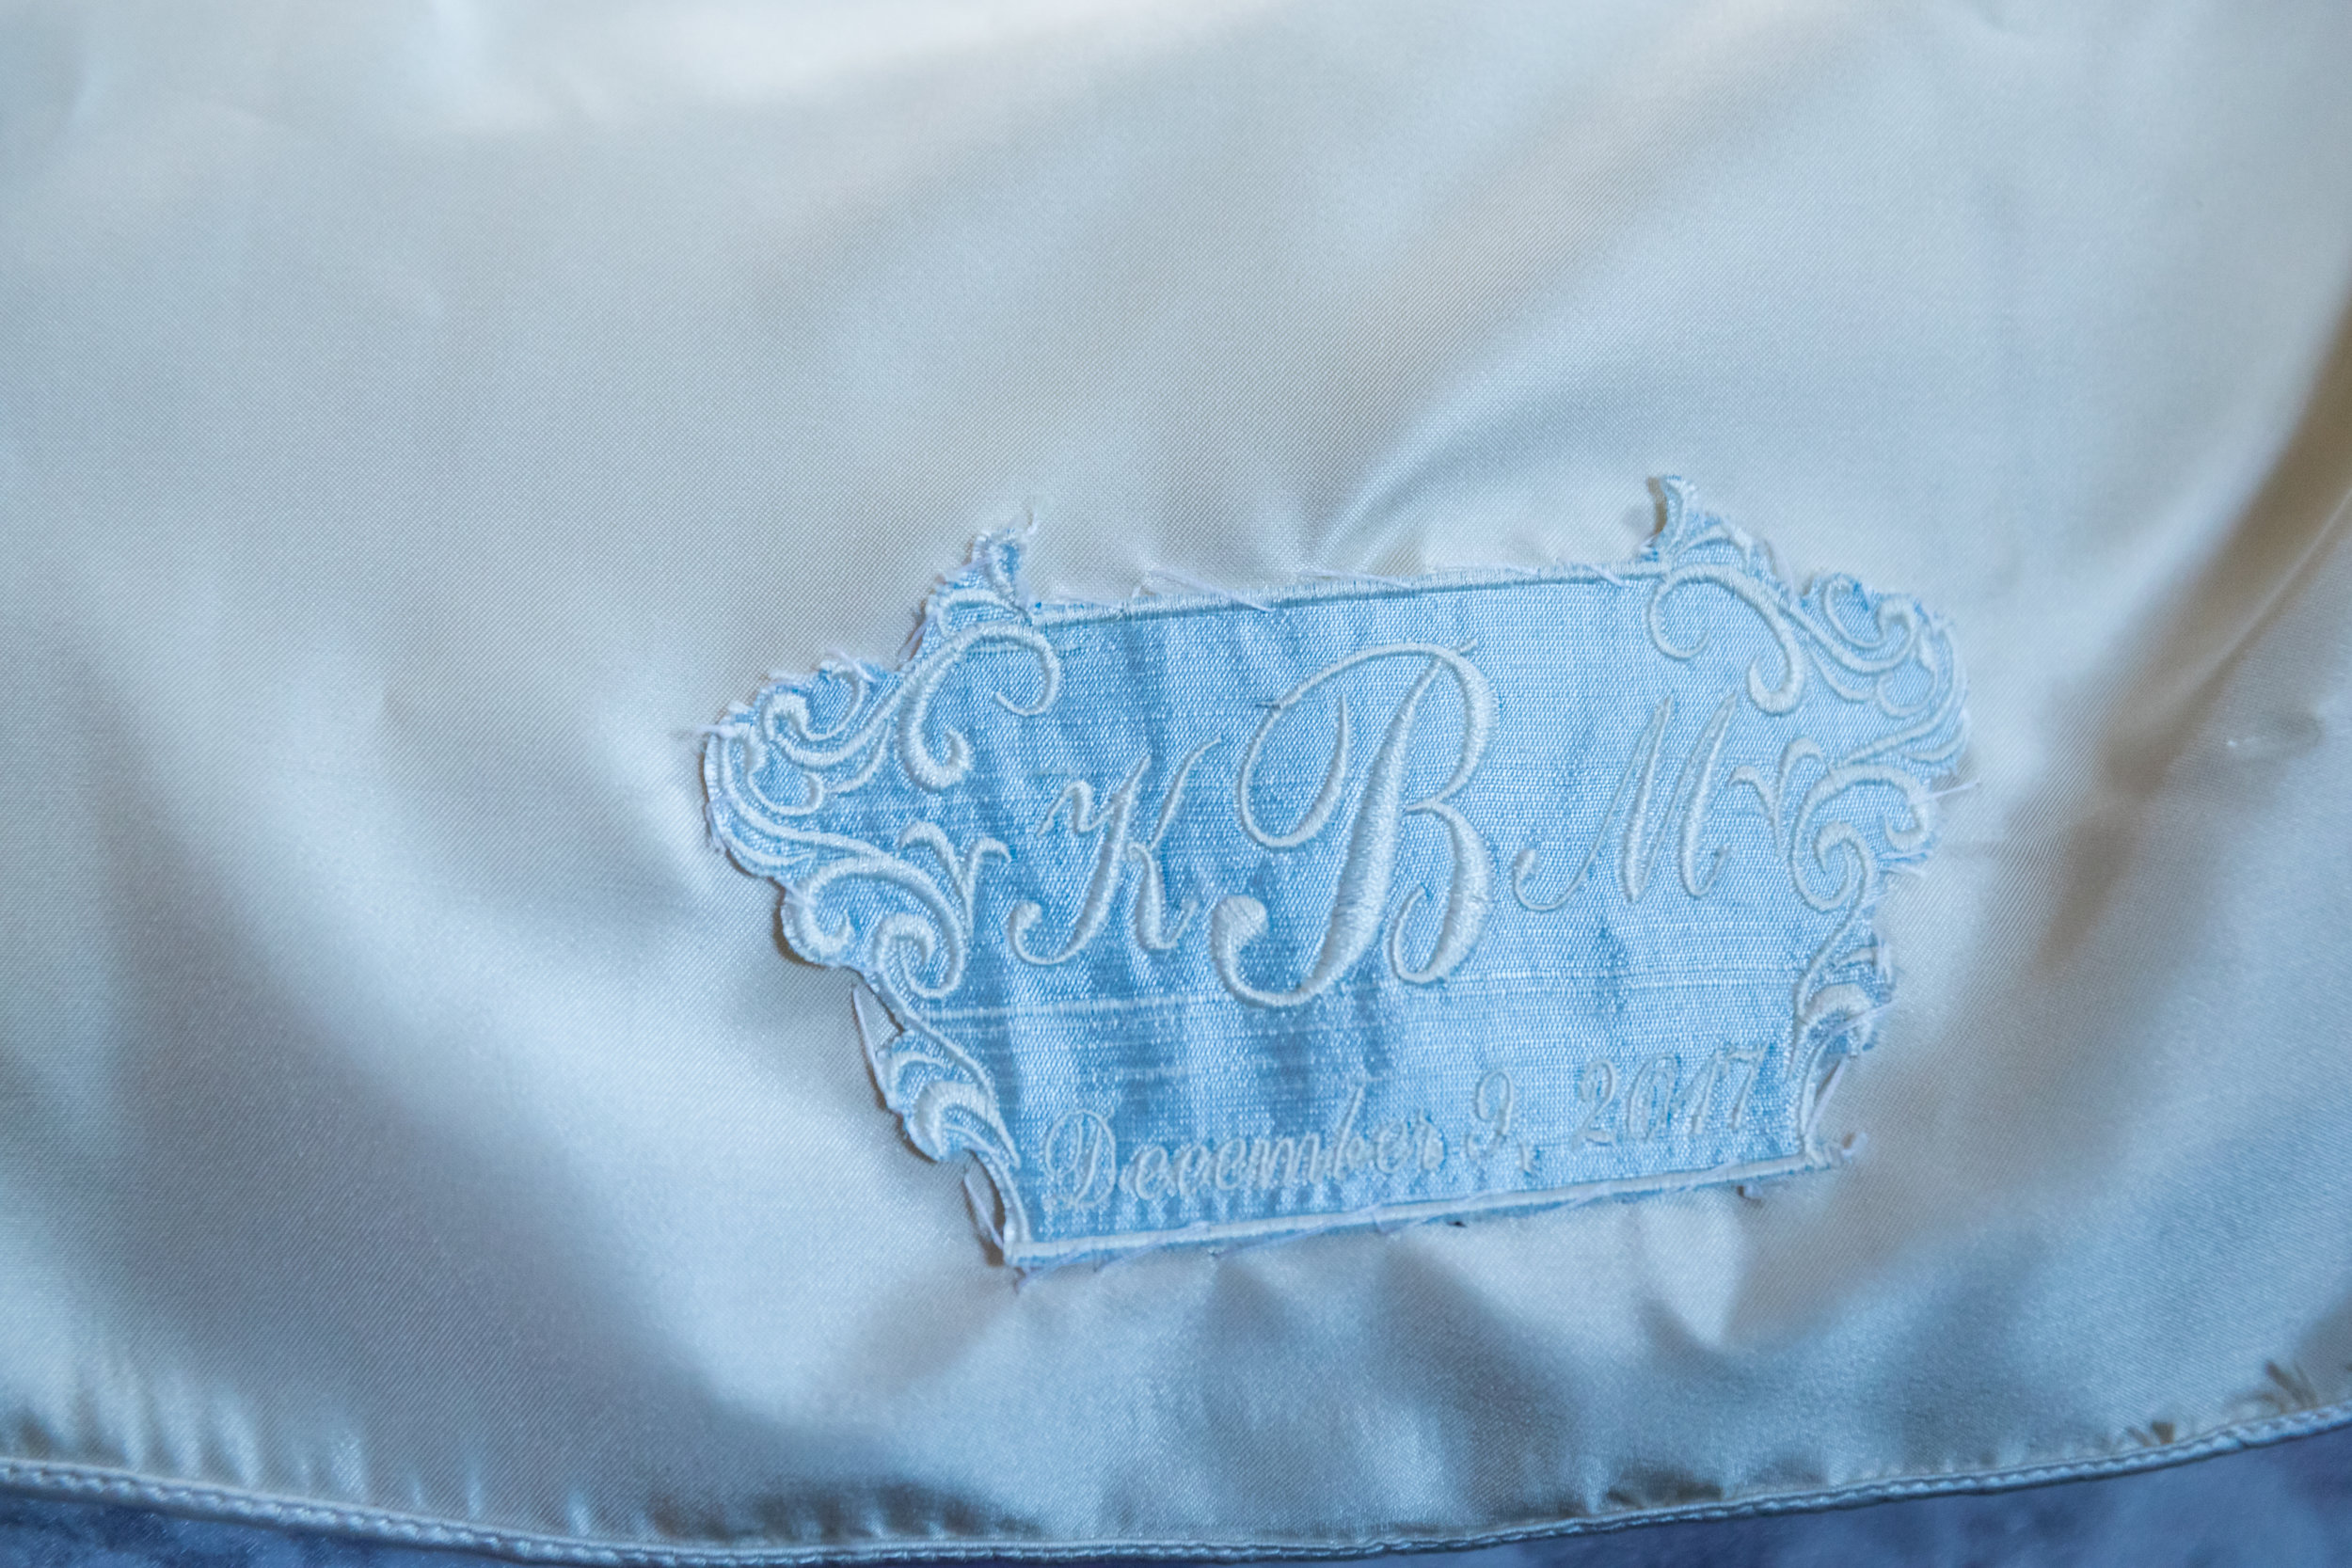 Southern Fete, Southern Wedding, Silk Embroidered Wedding Blanket, Jay Faugot Photography